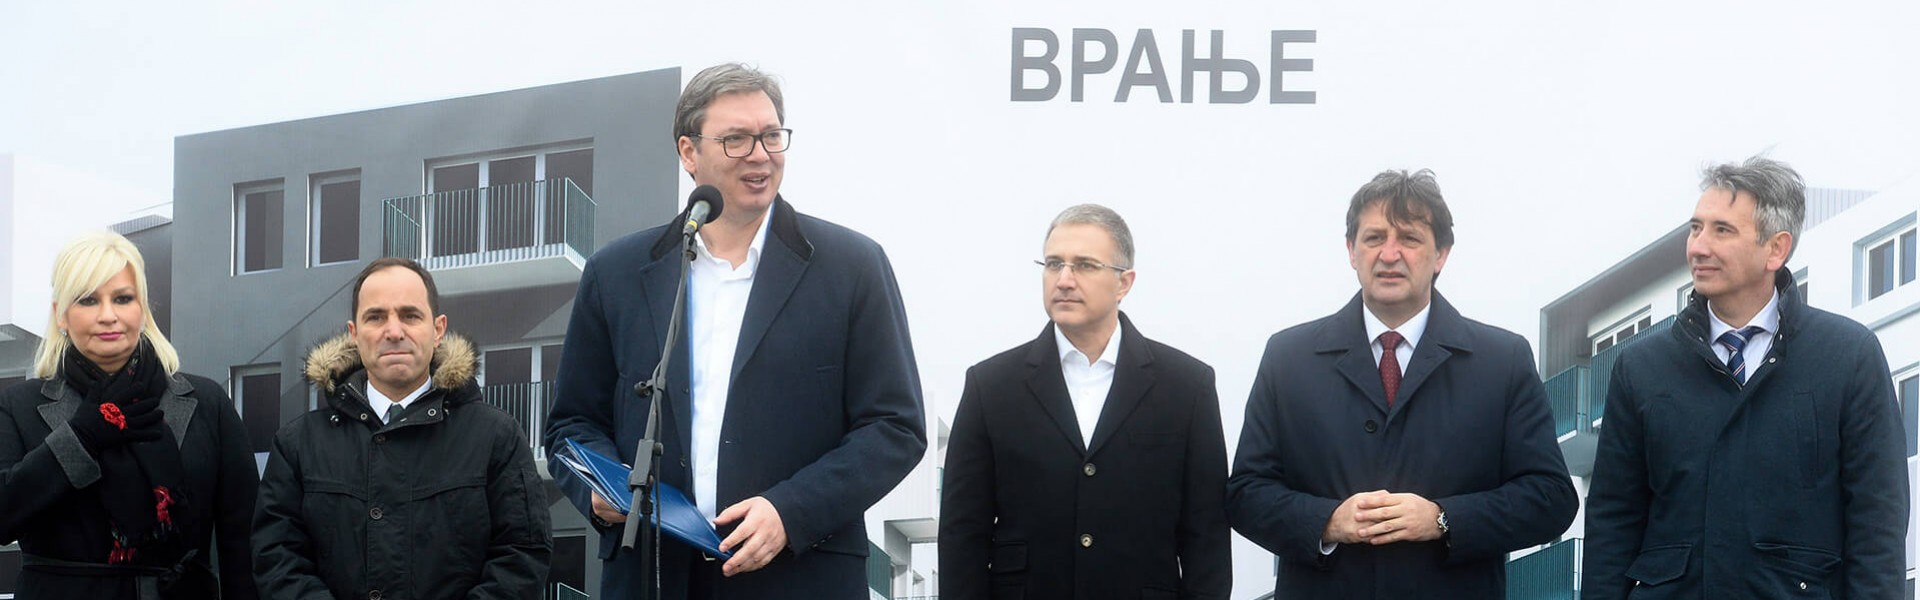 President Vučić: We are building a better future for Serbia